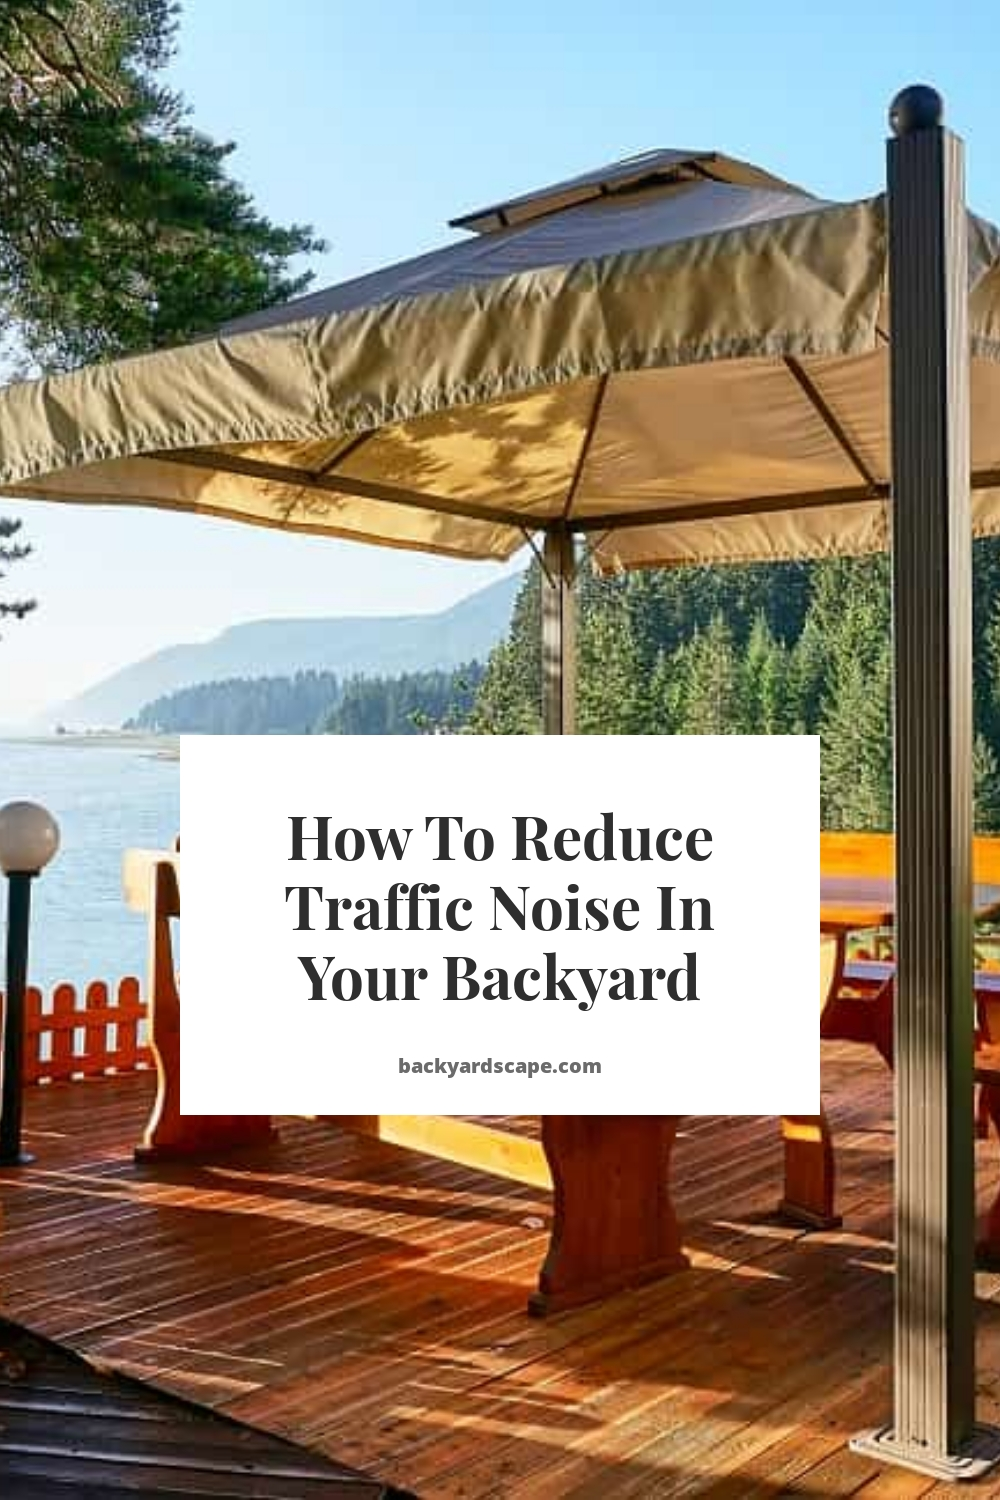 How To Reduce Traffic Noise In Your Backyard